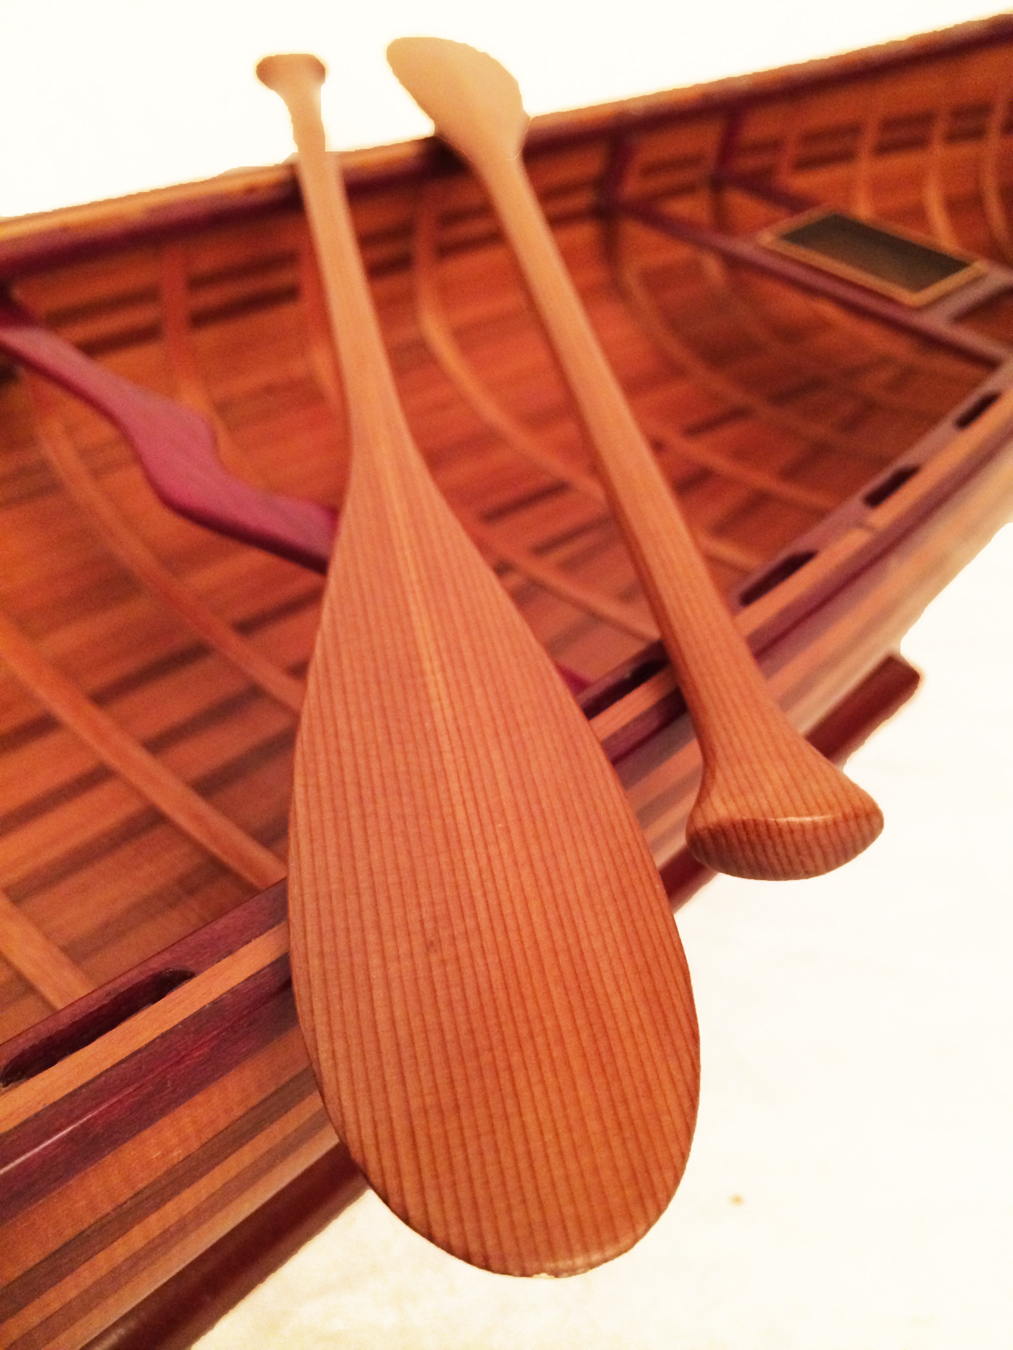 test miniature cedar wood canoe 06